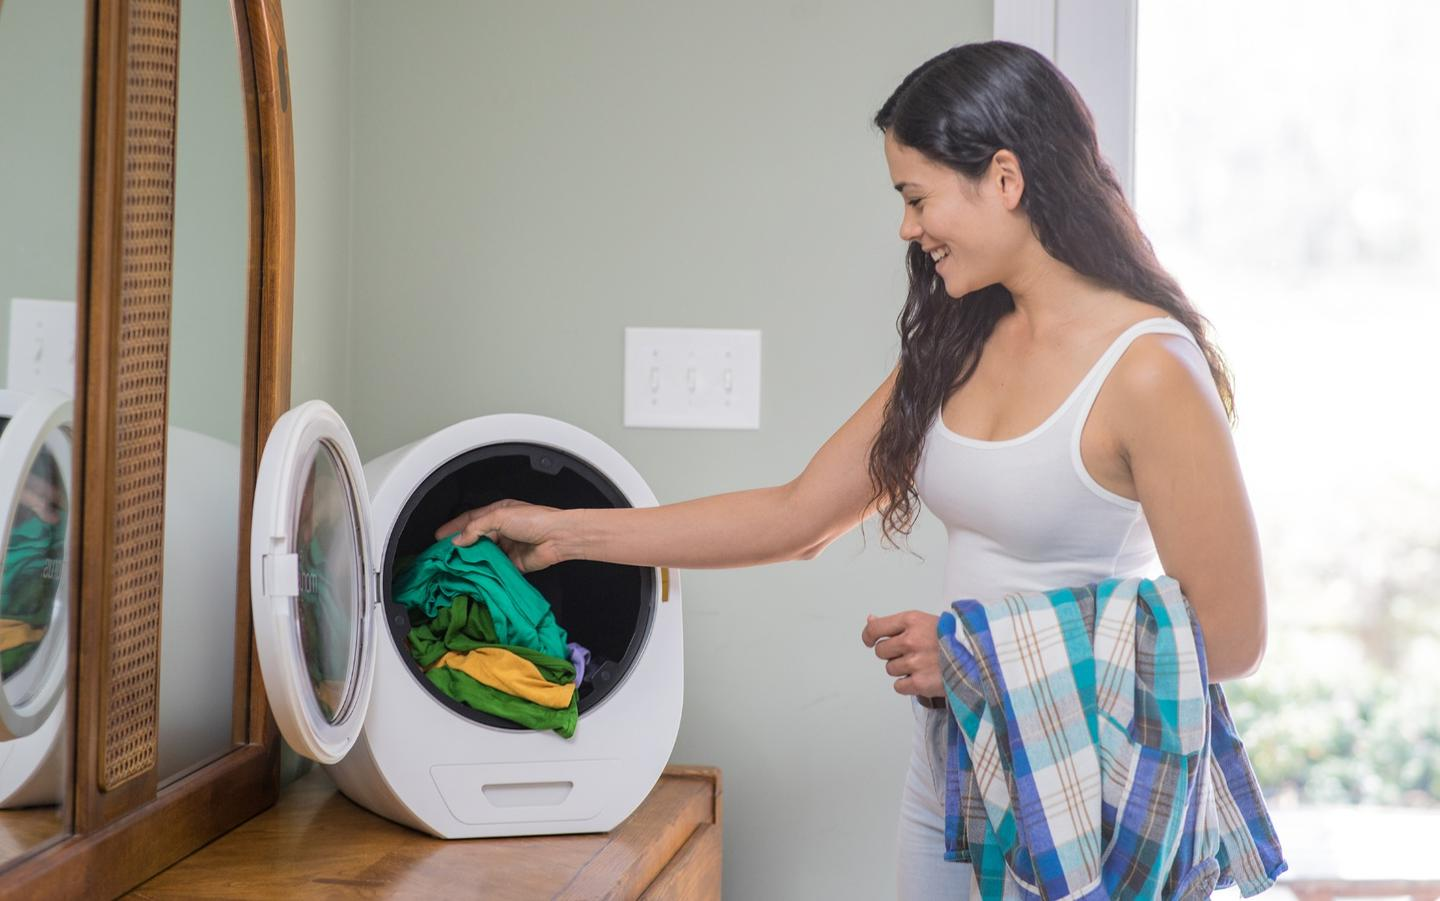 The Morus Zero is capable of drying up to 3.3 lb (1.5 kg) worth of clothes at one time